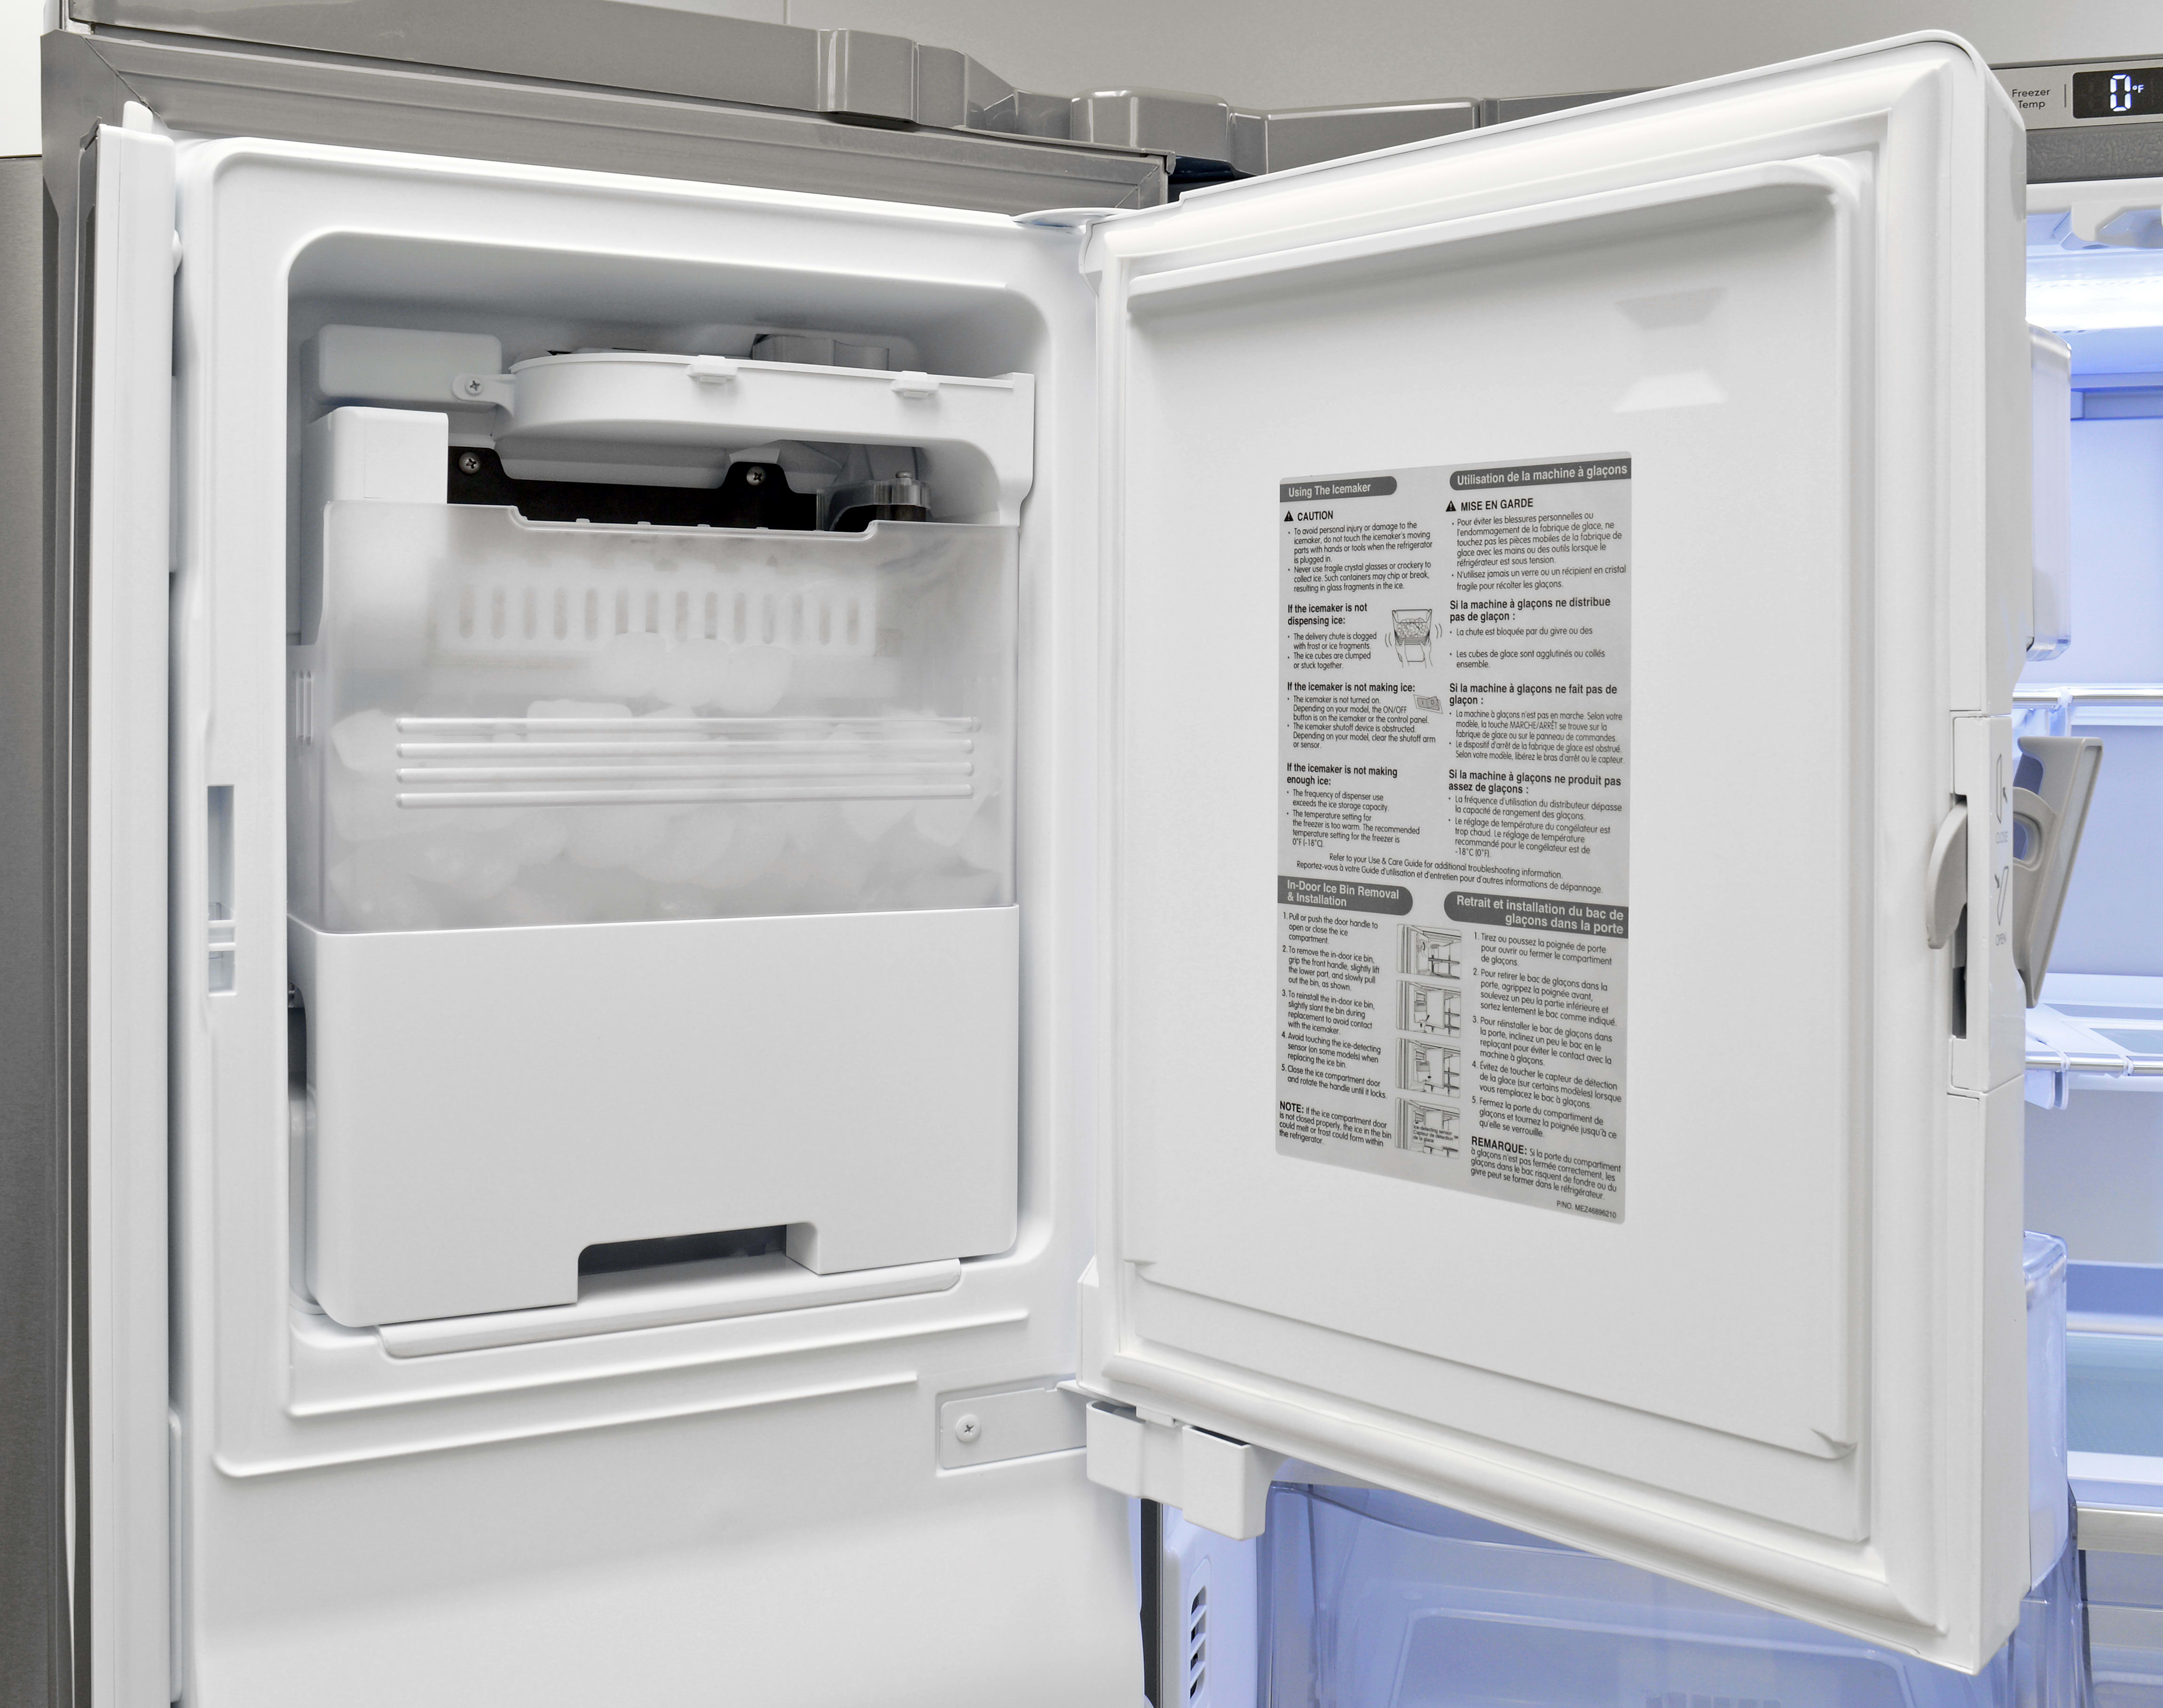 The Kenmore Pro 79993's slim ice maker takes up minimal space while still holding plenty of cubes.